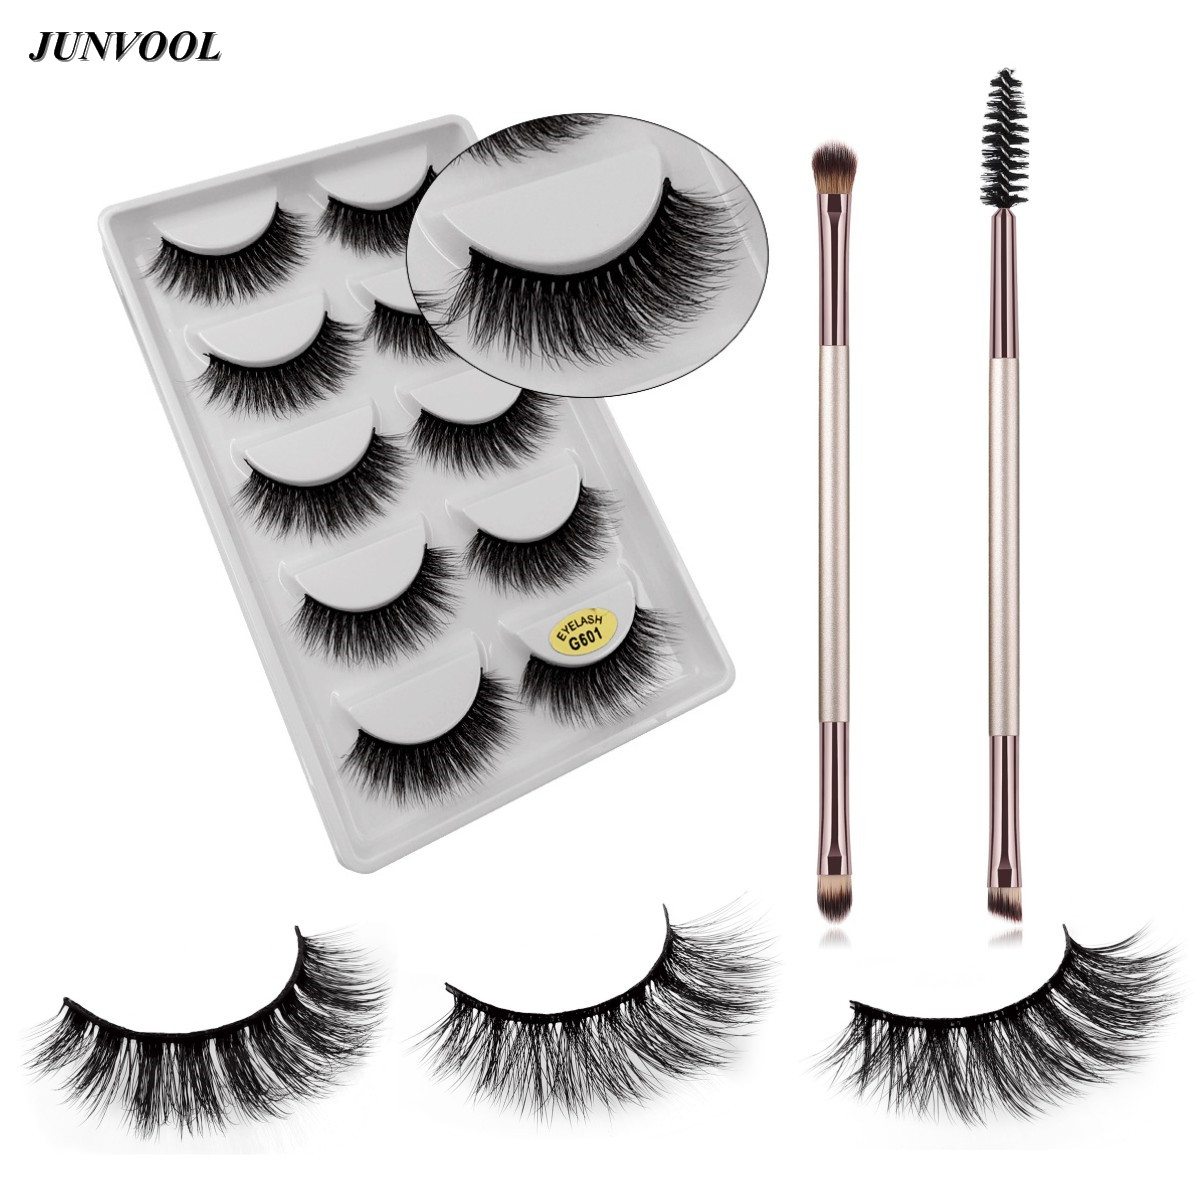 3D Mink Lashes Eyelash Extension 100% Handmade Thick Volume Long False Lash with Double Eyebrow Brush+Eyebrow Comb Makeup Tools